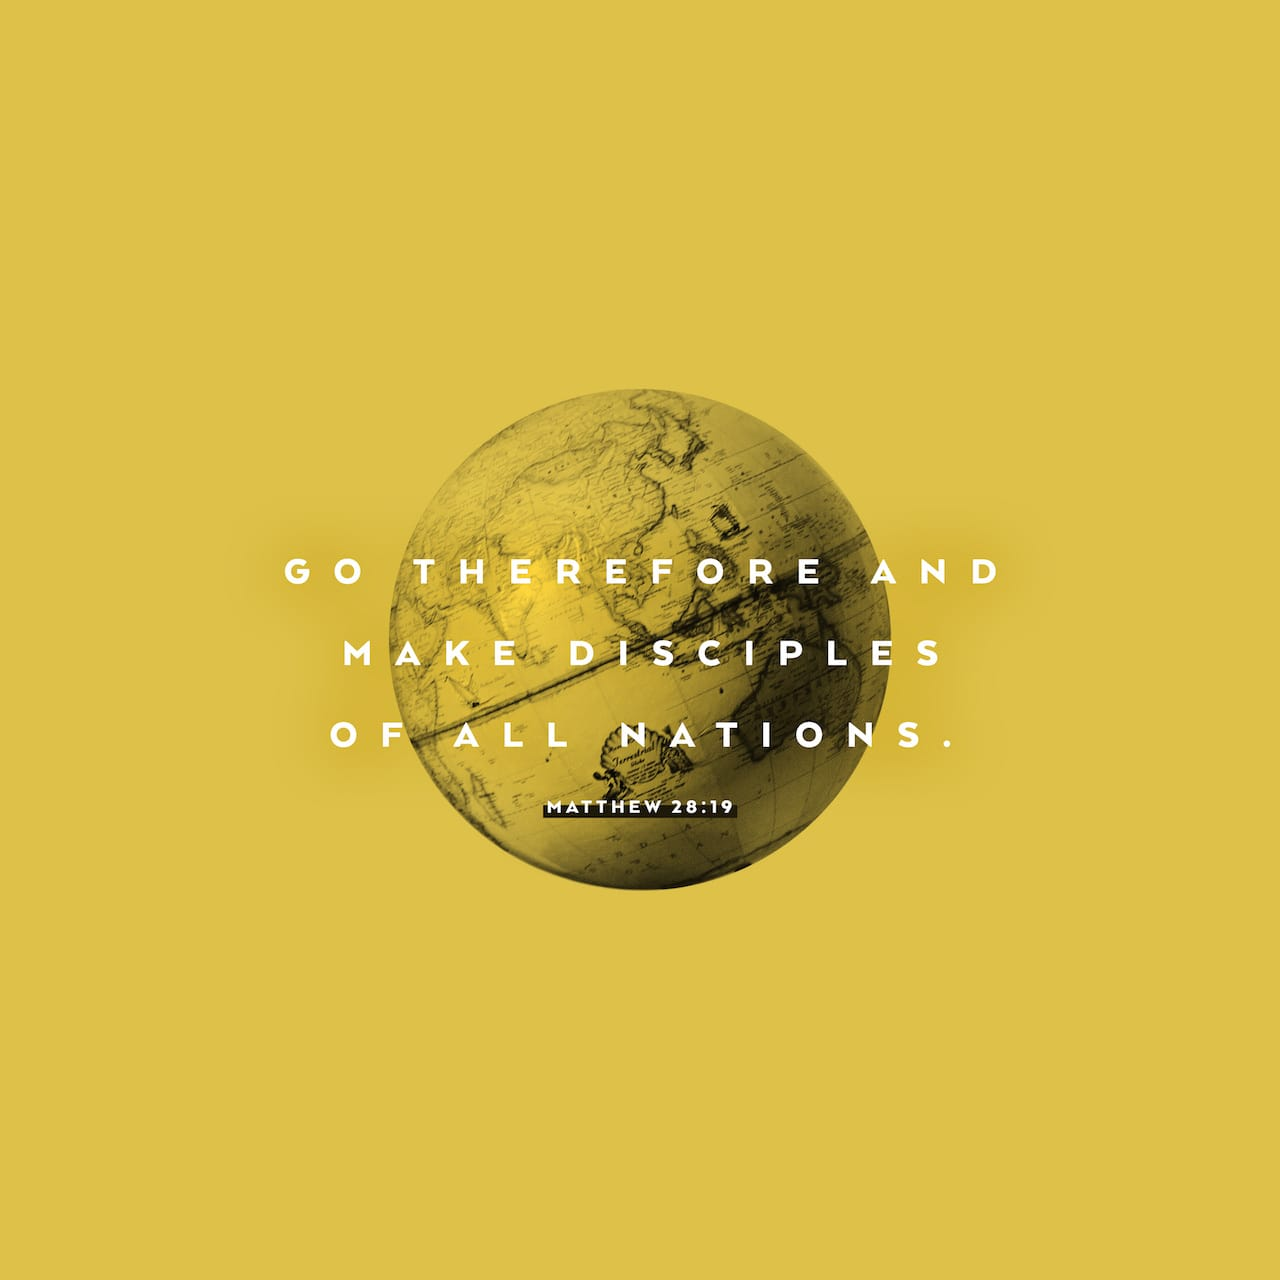 Matthew 28:19 Therefore go and make disciples of all nations, baptizing them in the name of the Father and of the Son and of the Holy Spirit | New International Version (NIV)